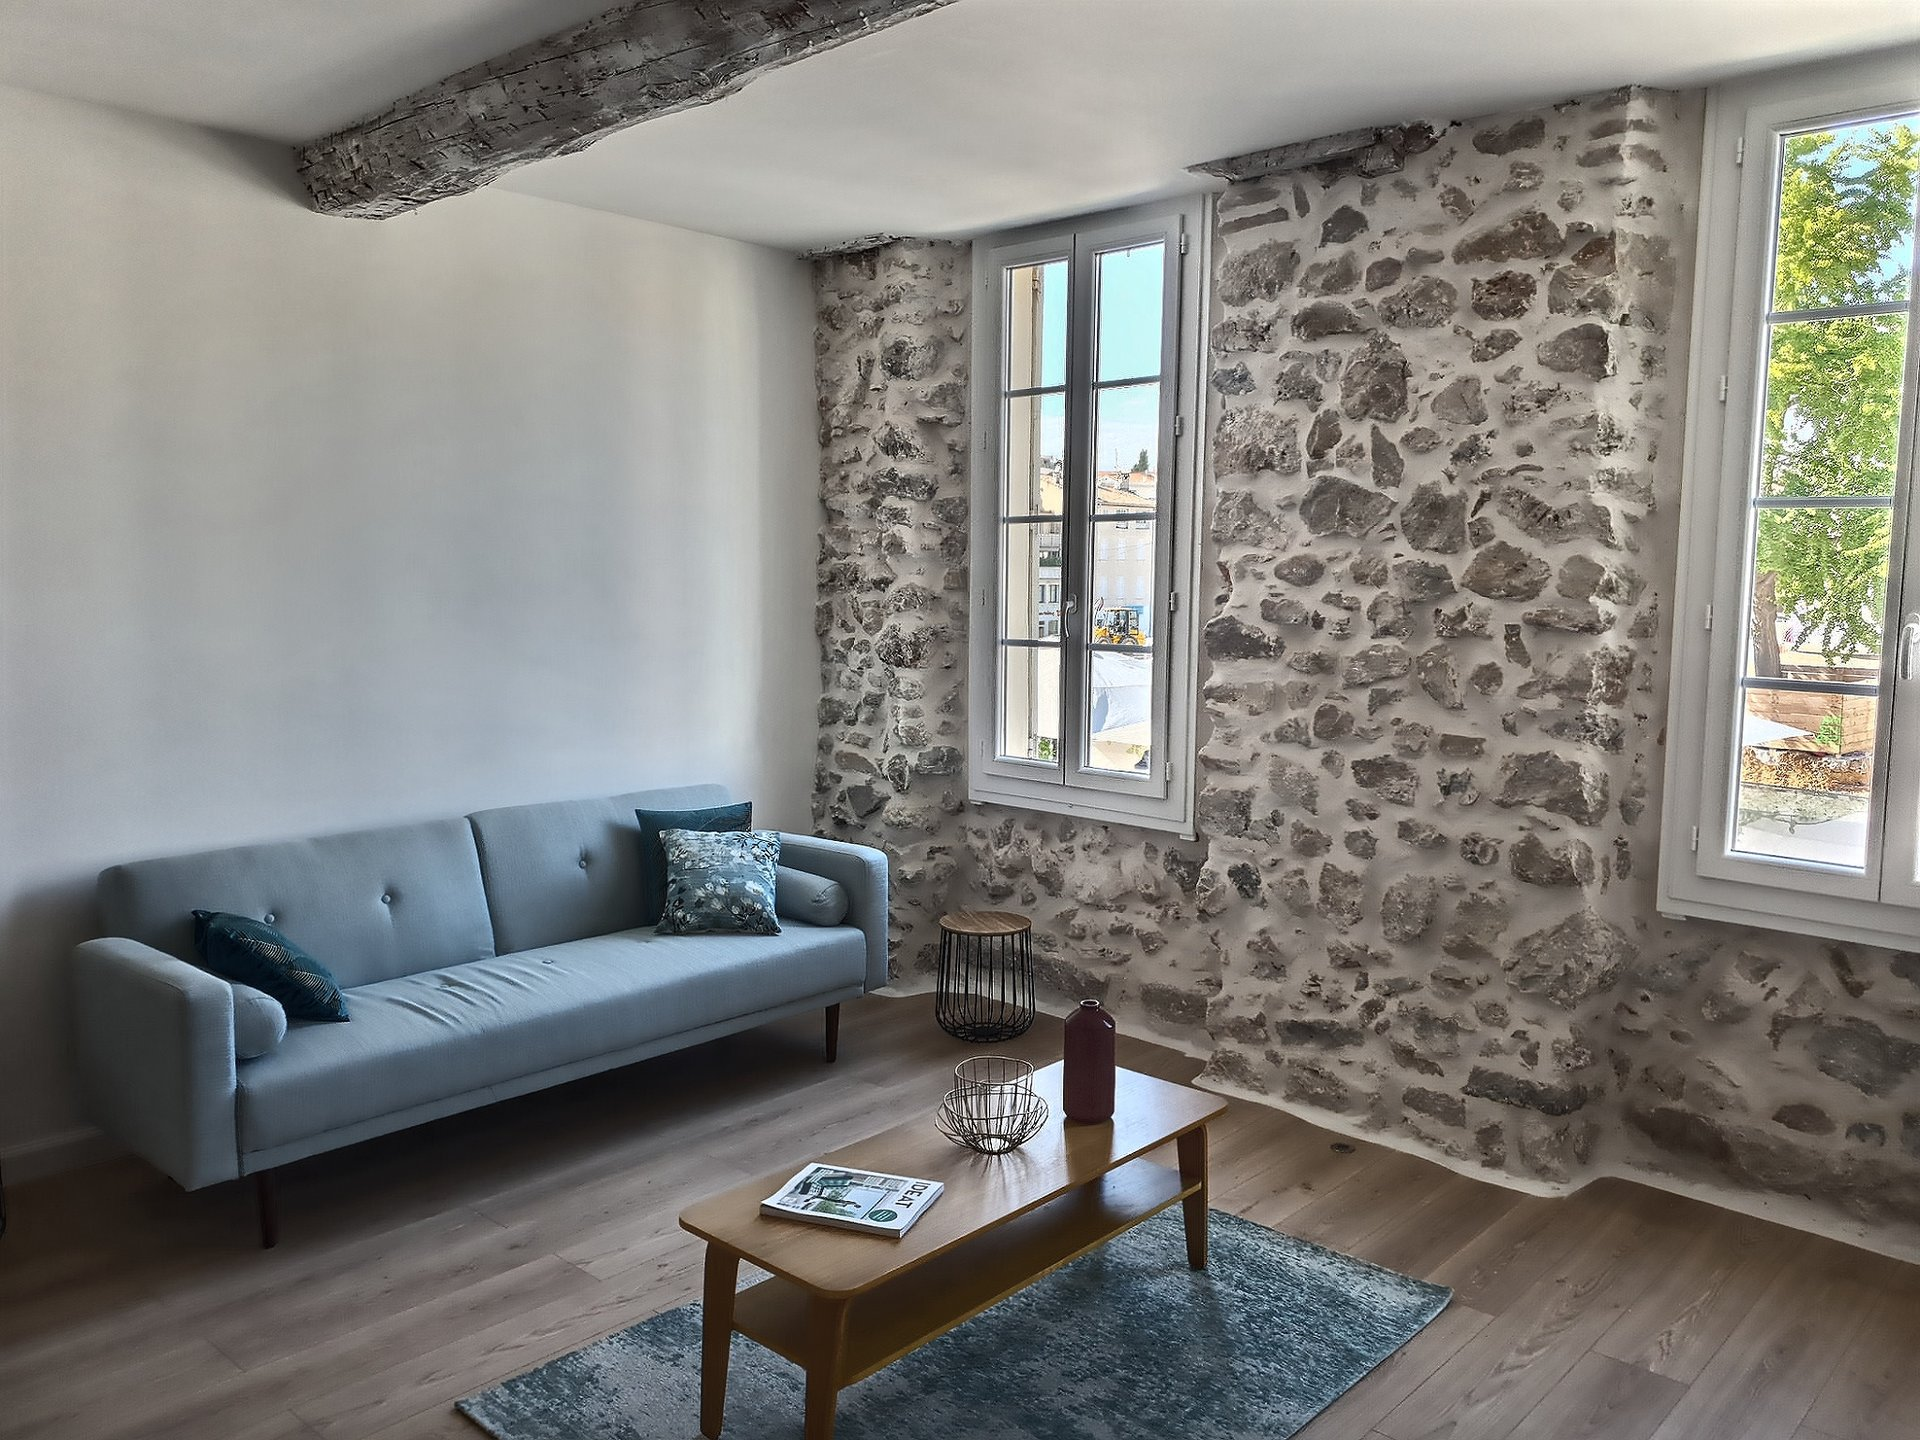 HEARTH OF VIEIL ANTIBES - 3/4 rooms of 85 m²